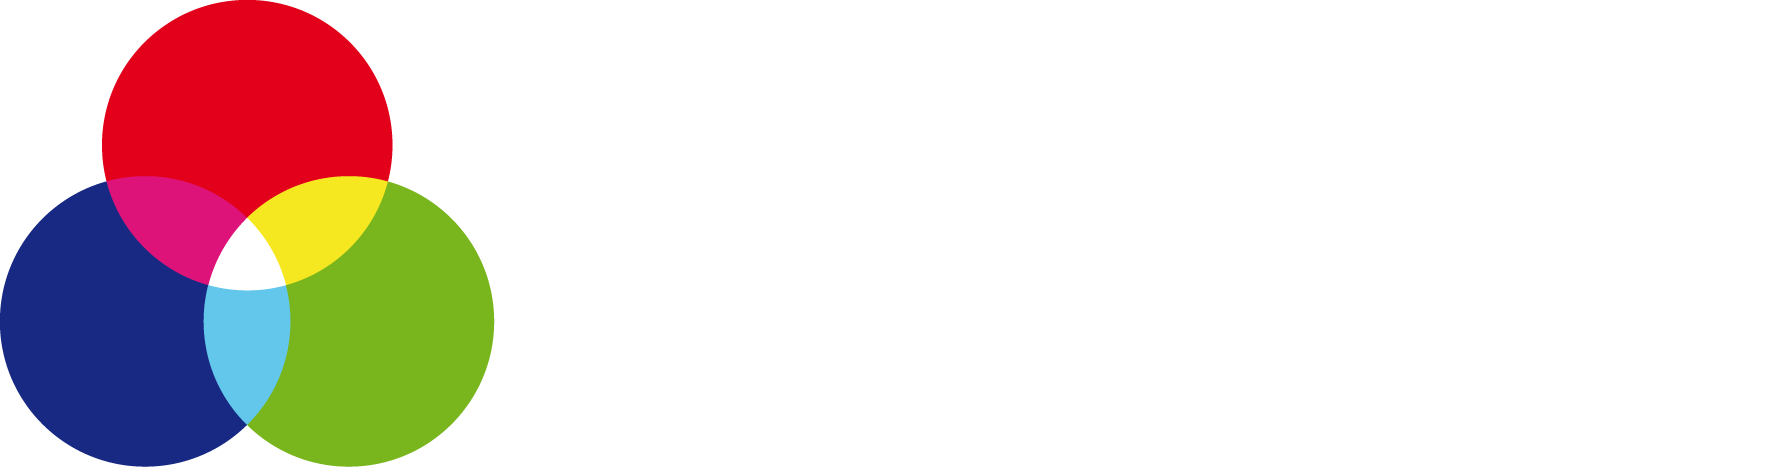 TRICO systems - LED obrazovky